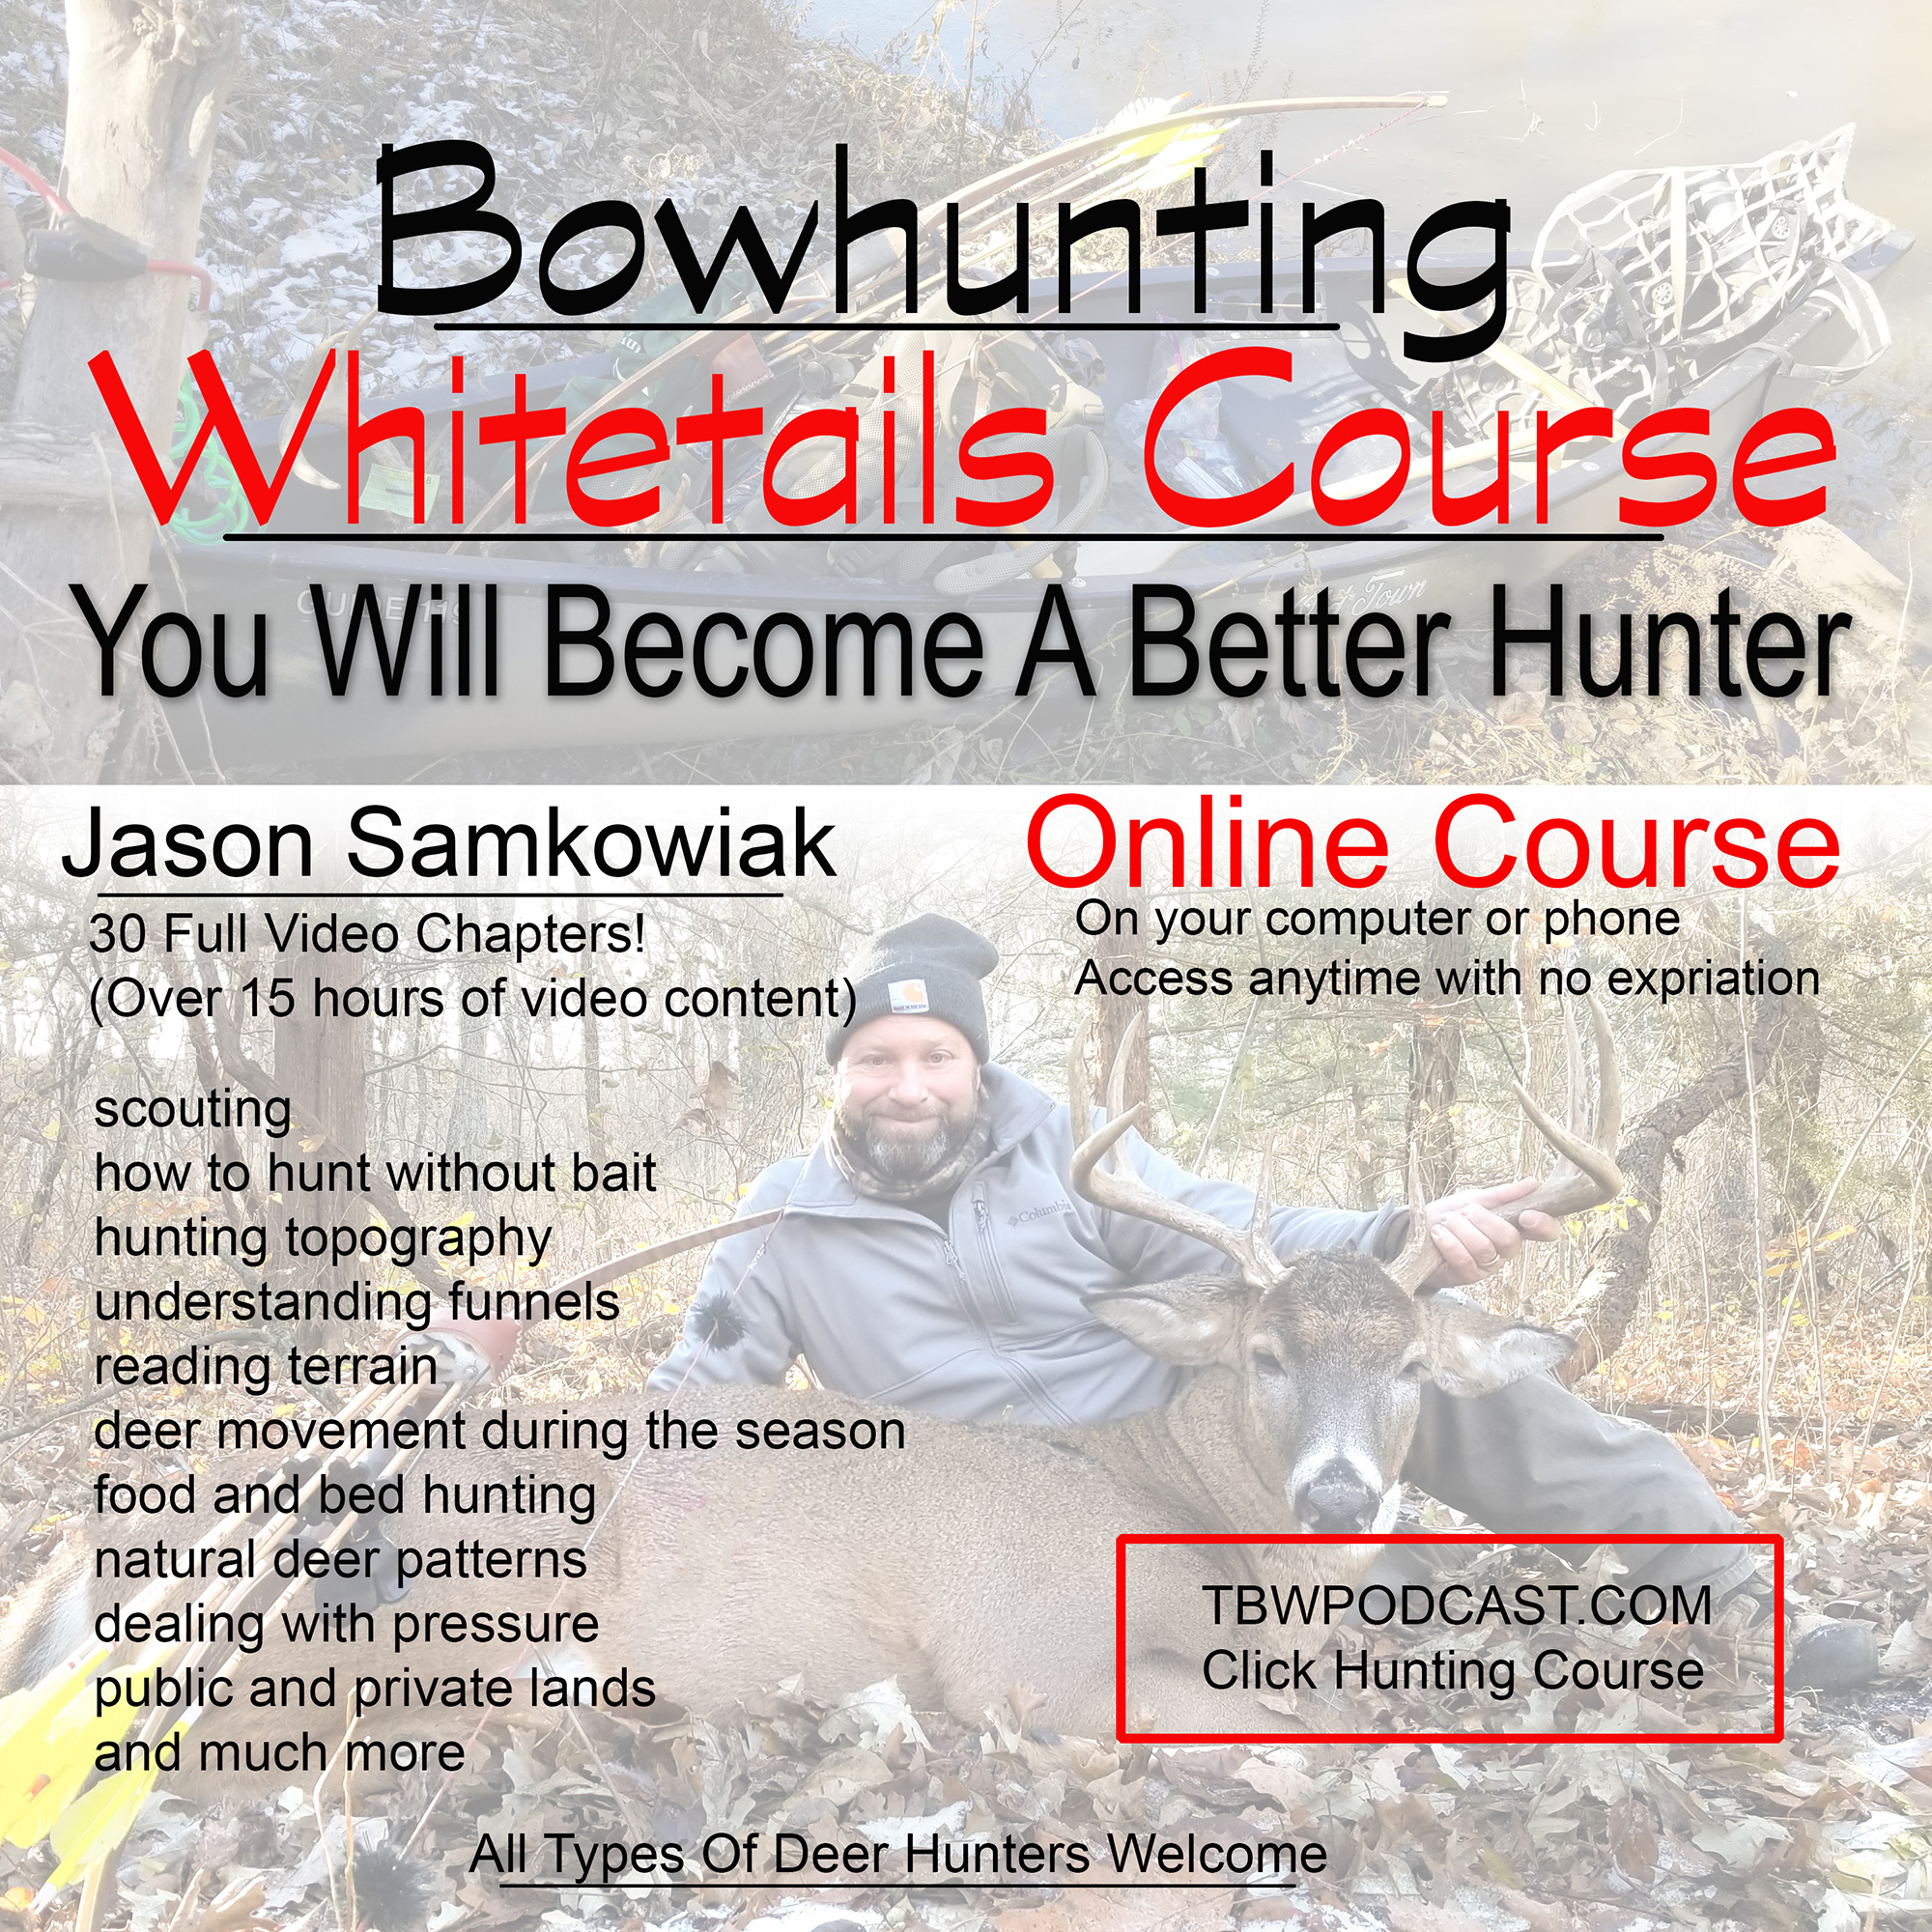 bowhunting whitetails course ad1